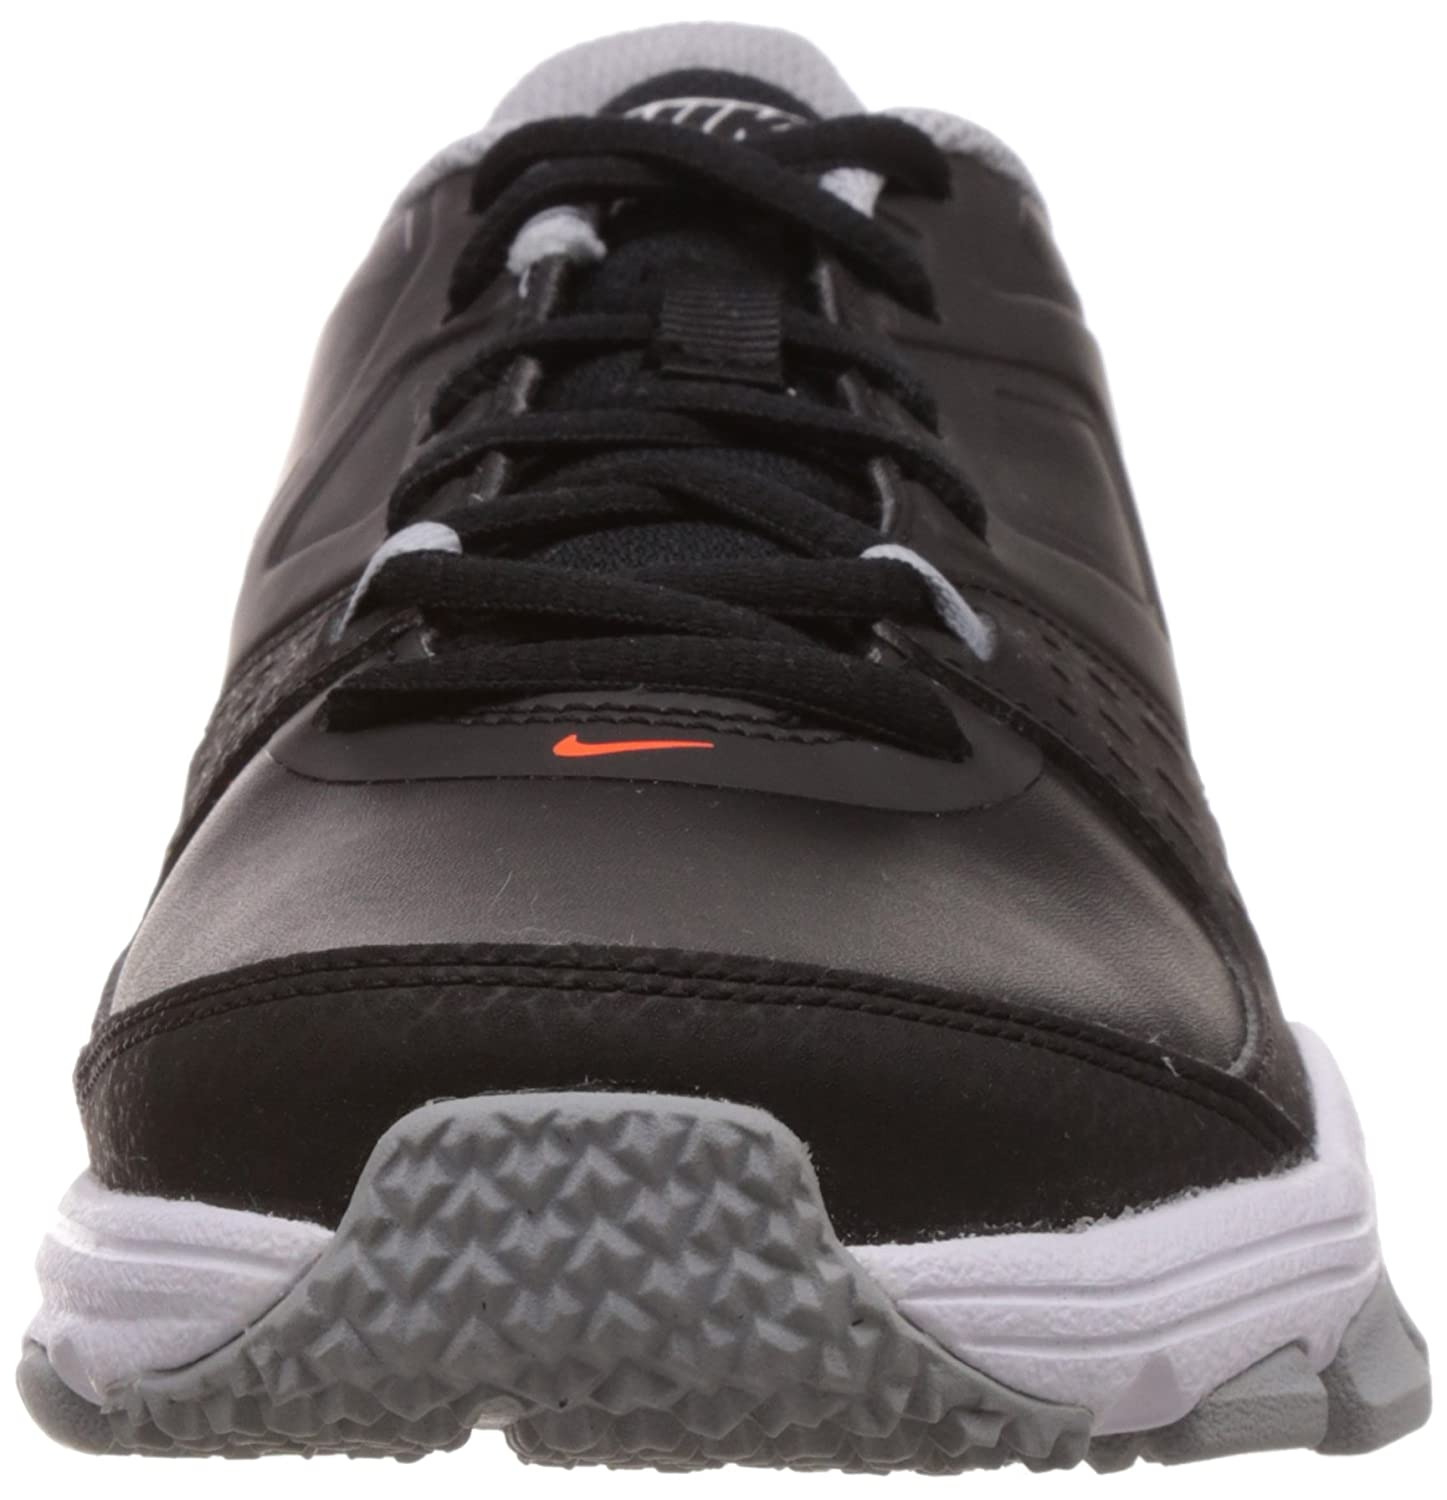 new styles 3cfae bd326 Nike Men s Air One Tr Sl Black, Hyper Crimson, Wolf Grey, White Outdoor  Multisport Training Shoes -10 UK India (45 EU)(11 US)  Buy Online at Low  Prices in ...